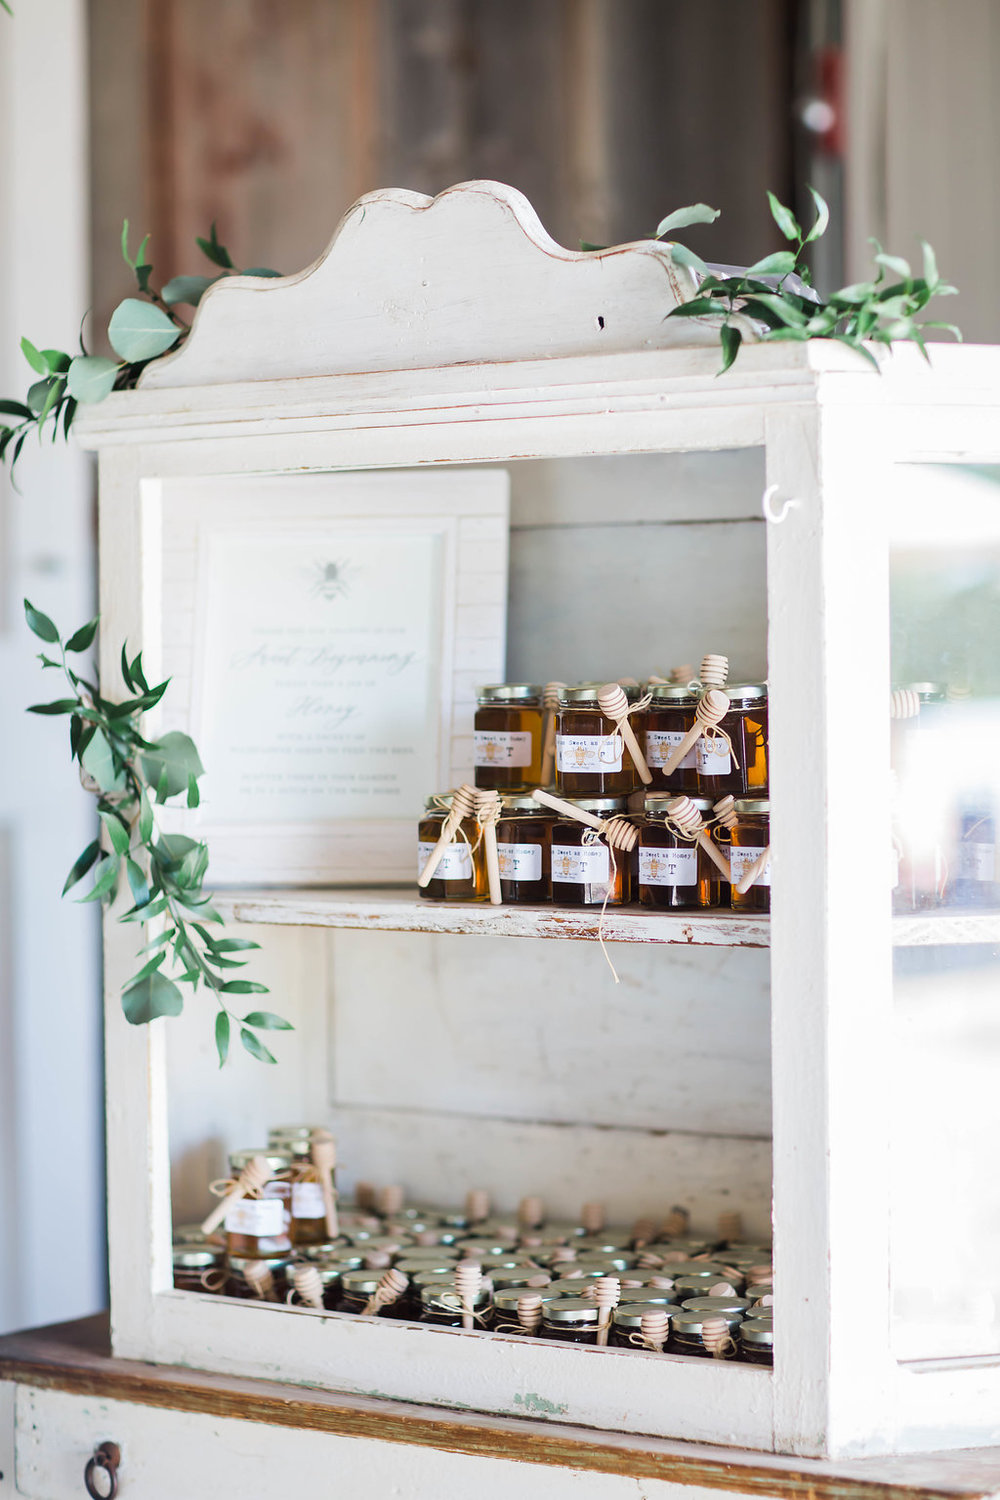 Heirloom Event Co. | Sustainable Wedding Favors | Emerson Creek Pottery & Tea Room